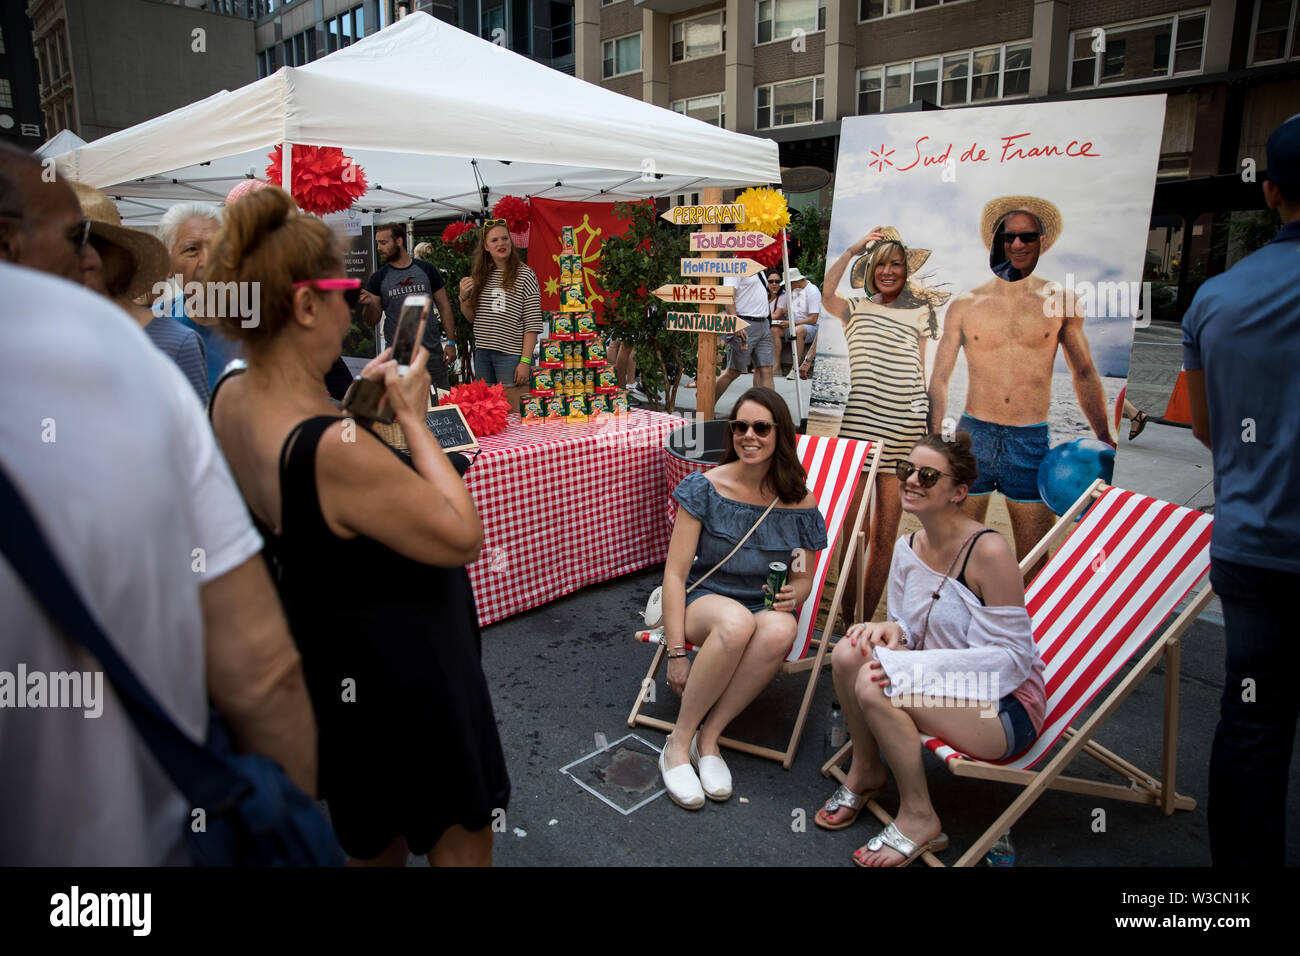 New York, USA. 14th July 2019. New York, French National Day. 14th July, 1789. People pose for photos with a cutout picture of a French beach during the French Institute Alliance Francaise (FIAF)'s Bastille Day Celebration in New York, the United States, July 14, 2019. Bastille Day, also known as the French National Day, commemorates the start of the French Revolution and the storming of the Bastille in Paris on July 14, 1789. Credit: Michael Nagle/Xinhua/Alamy Live News - Stock Image